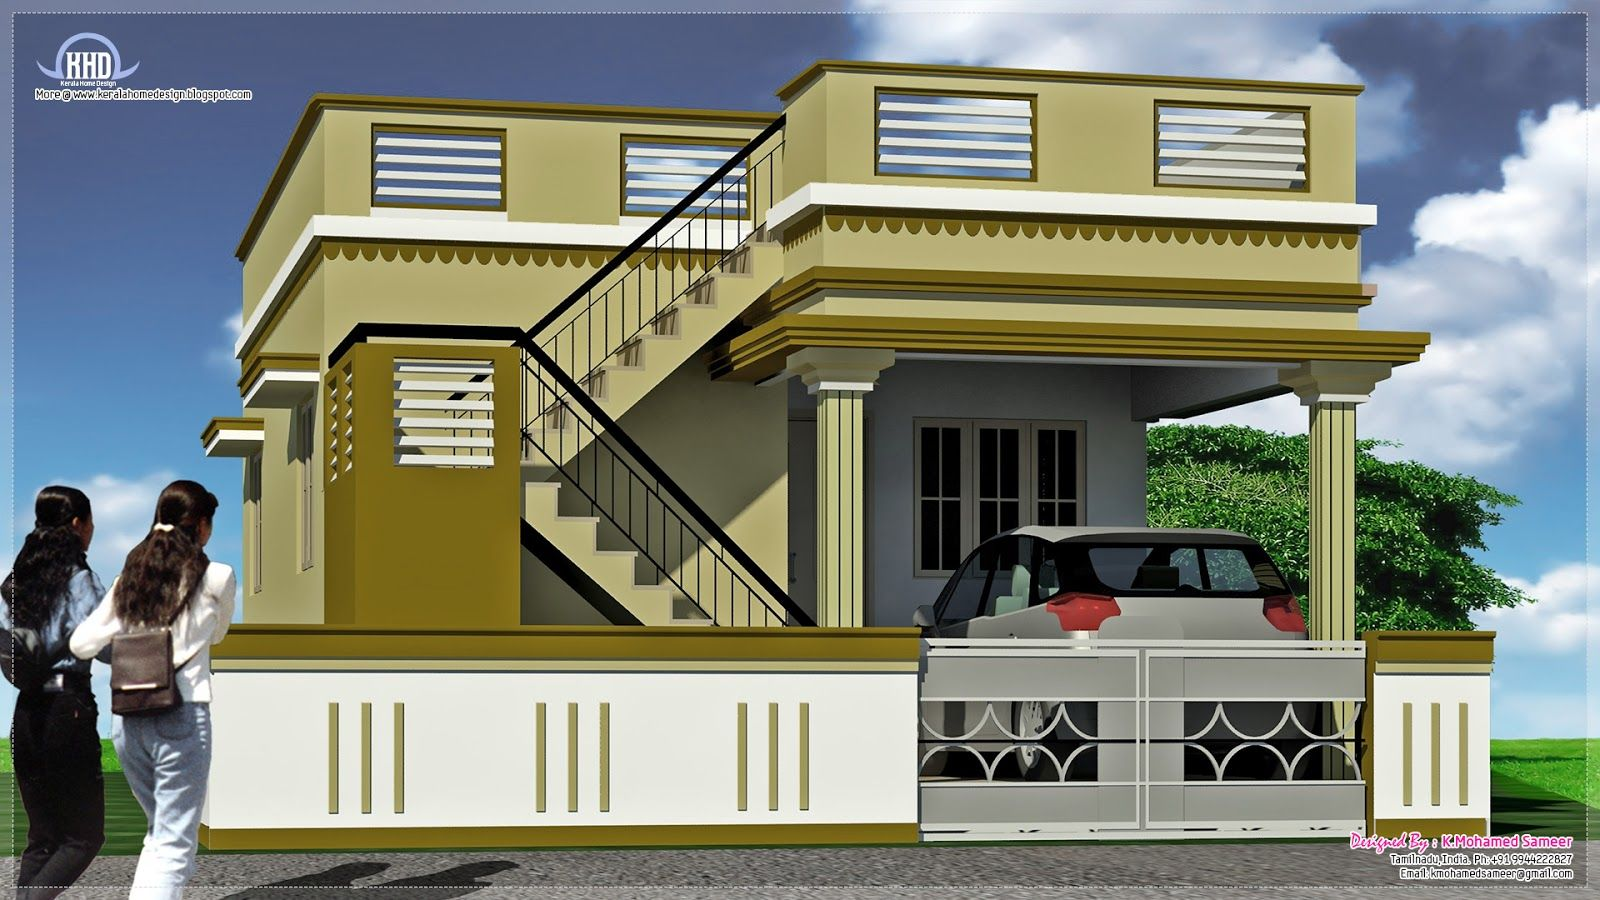 South Indian House Exterior Designs House Design Plans Bedroom American South Indian Hou Single Floor House Design Small House Front Design House Front Design